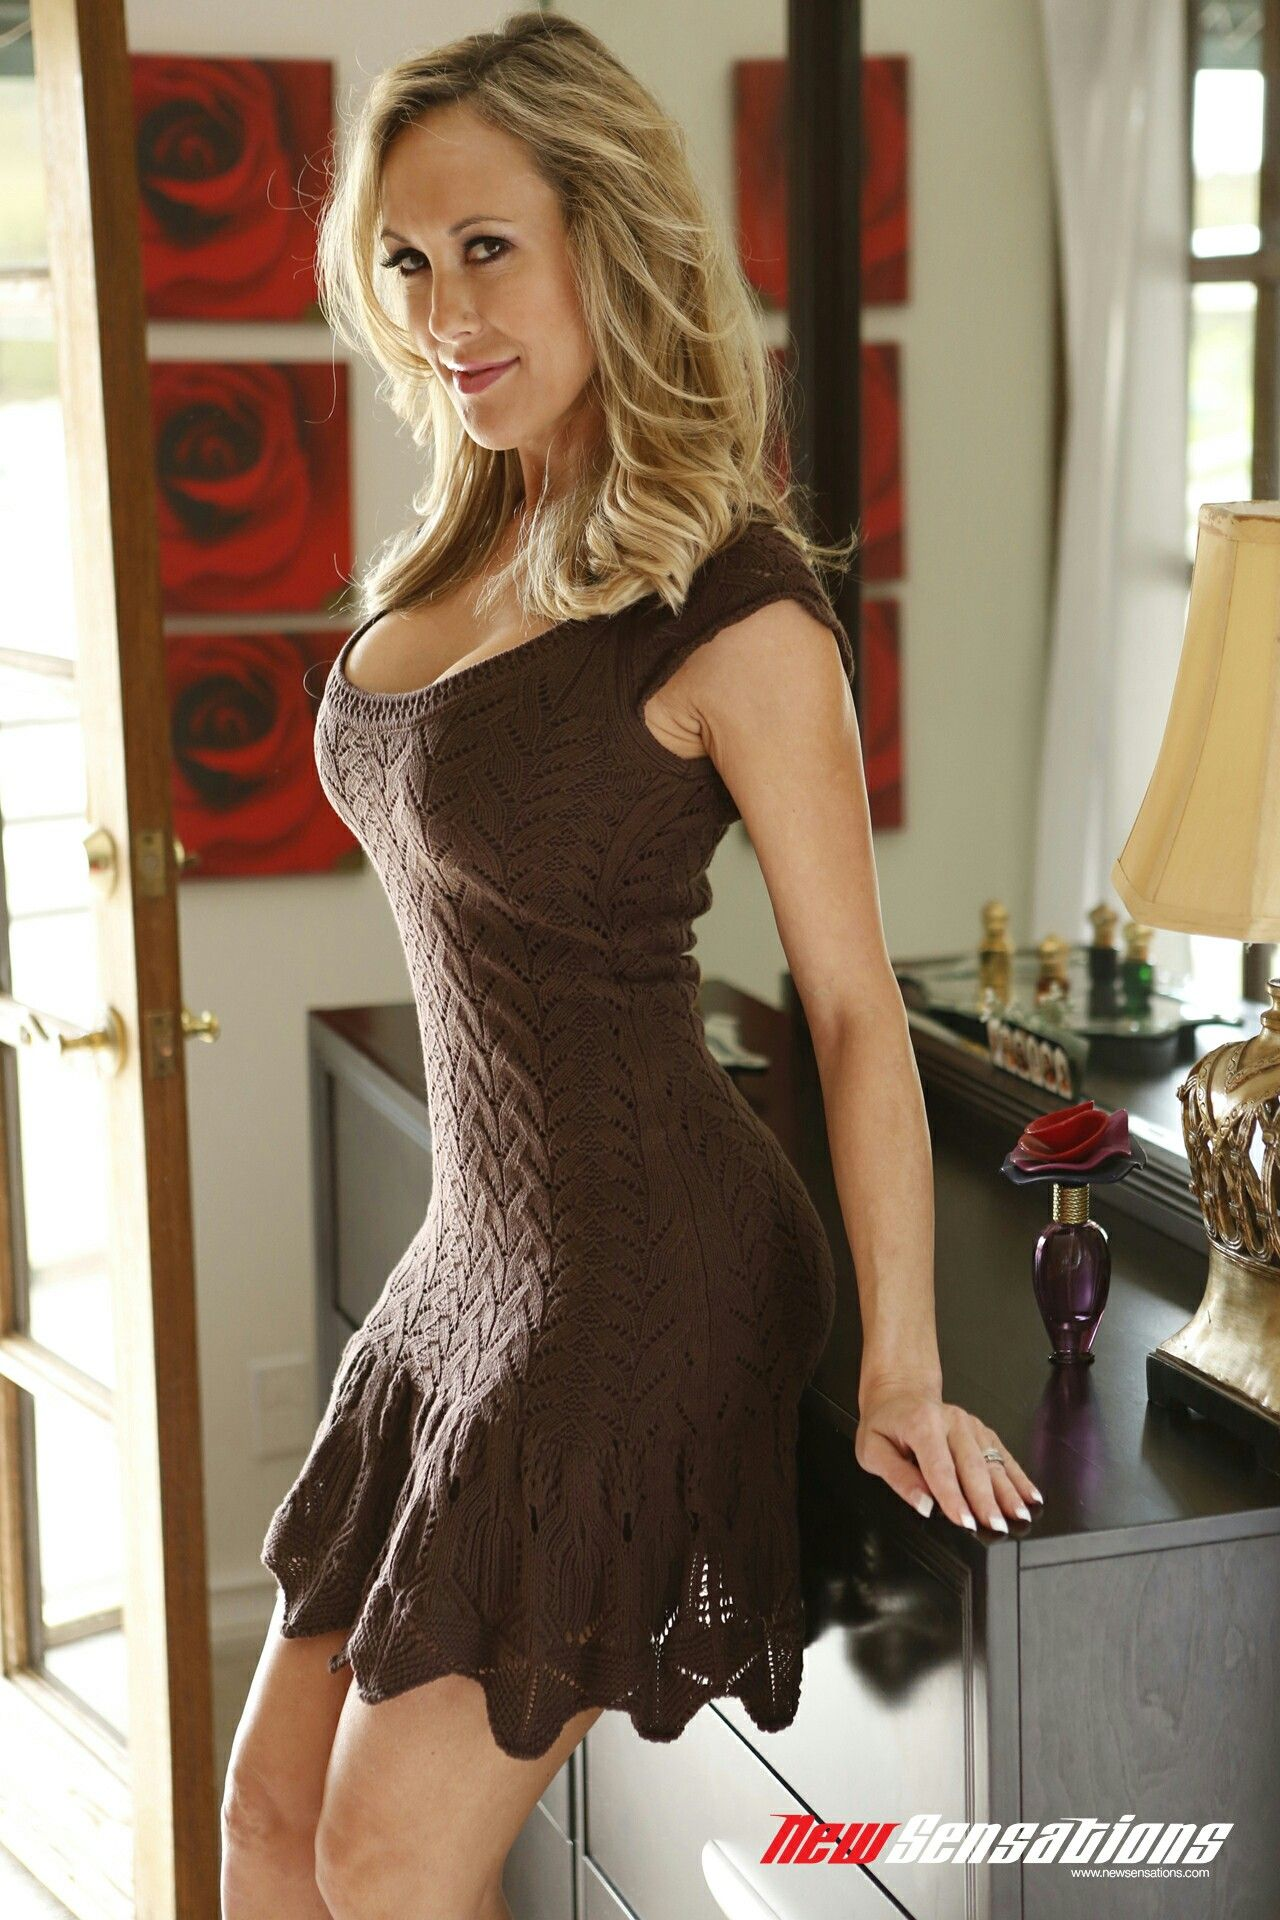 Brandi Love Widescreen